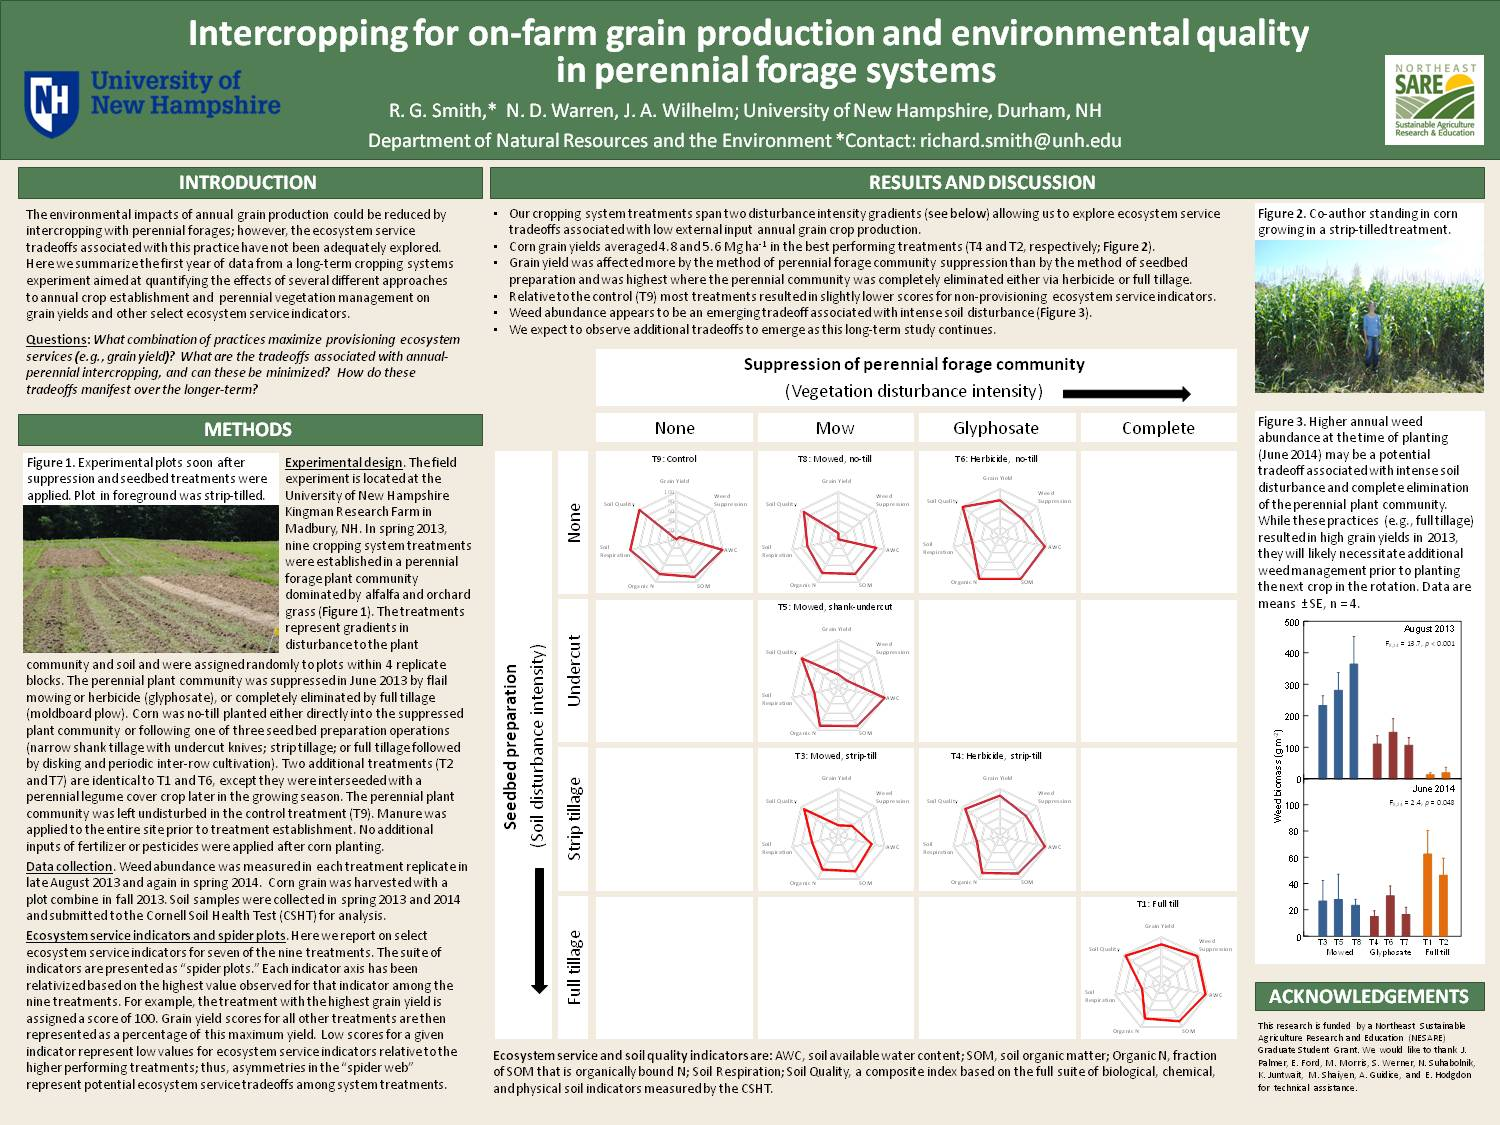 Intercropping For On-Farm Grain Production And Environmental Quality In Perennial Forage Systems by jwilhelm